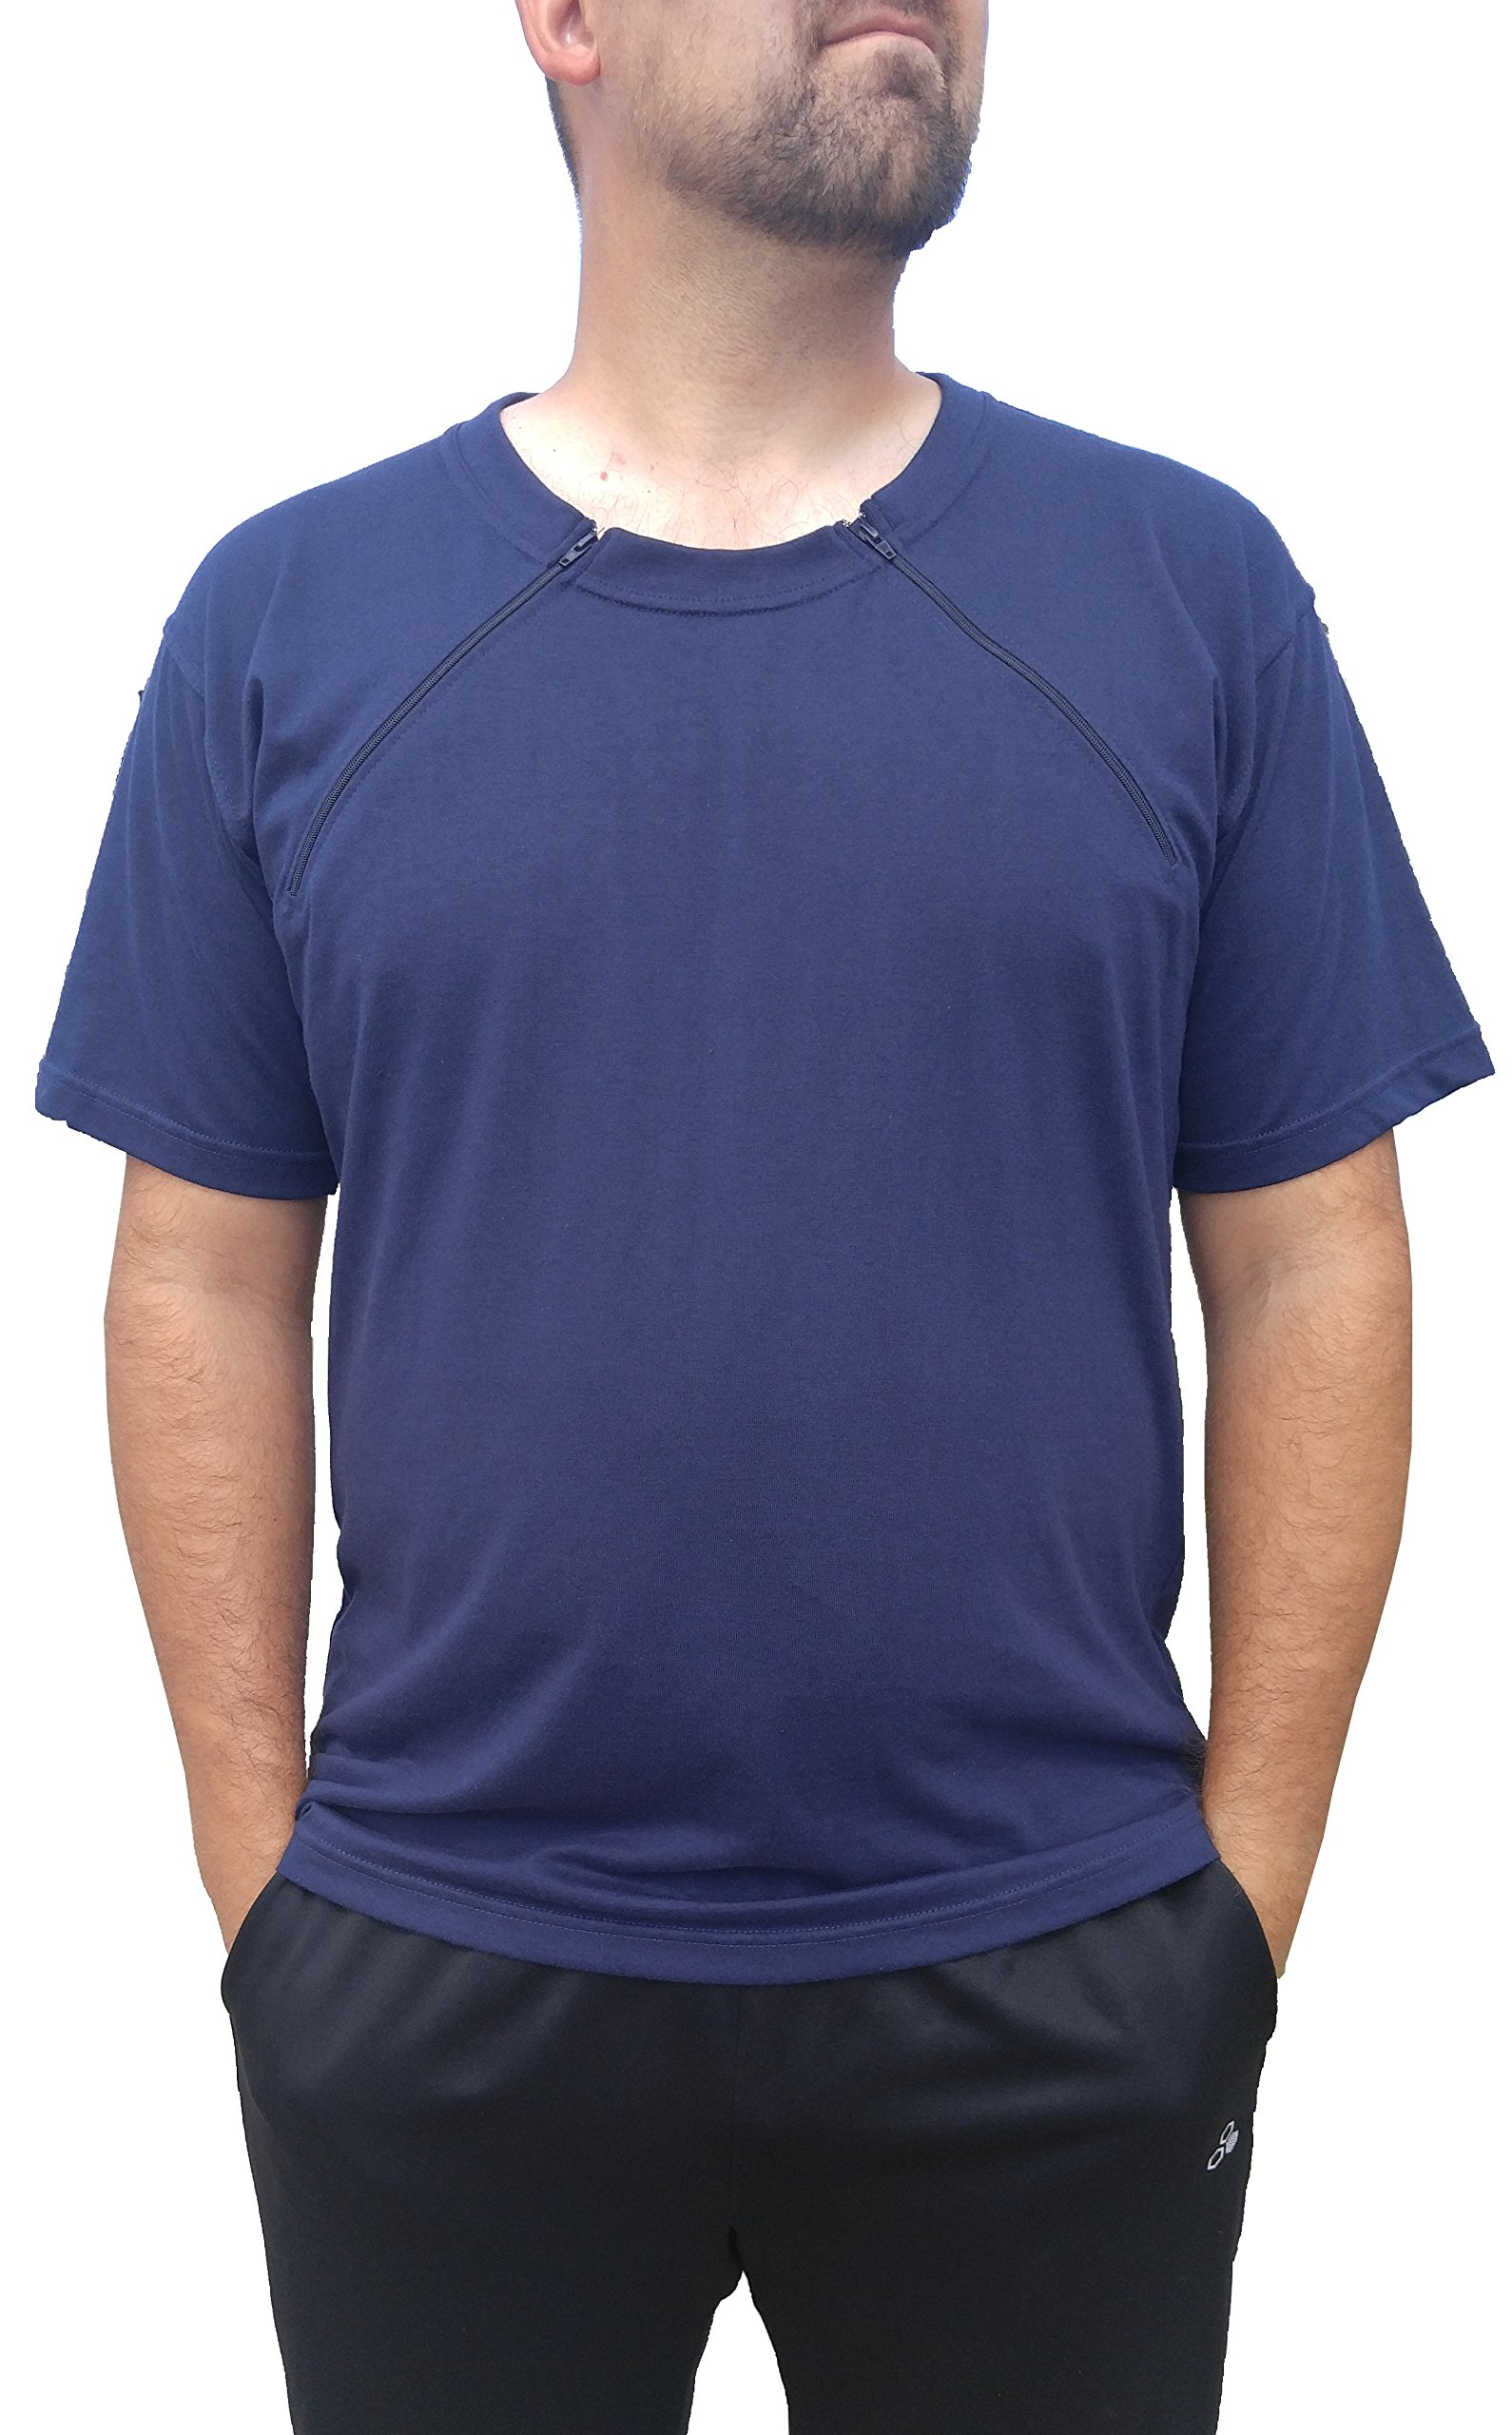 Comfy Care Men's Chest Port Zipper Chemo Shirts | Gift For Chemotherapy Cancer Patients (Small, Navy)